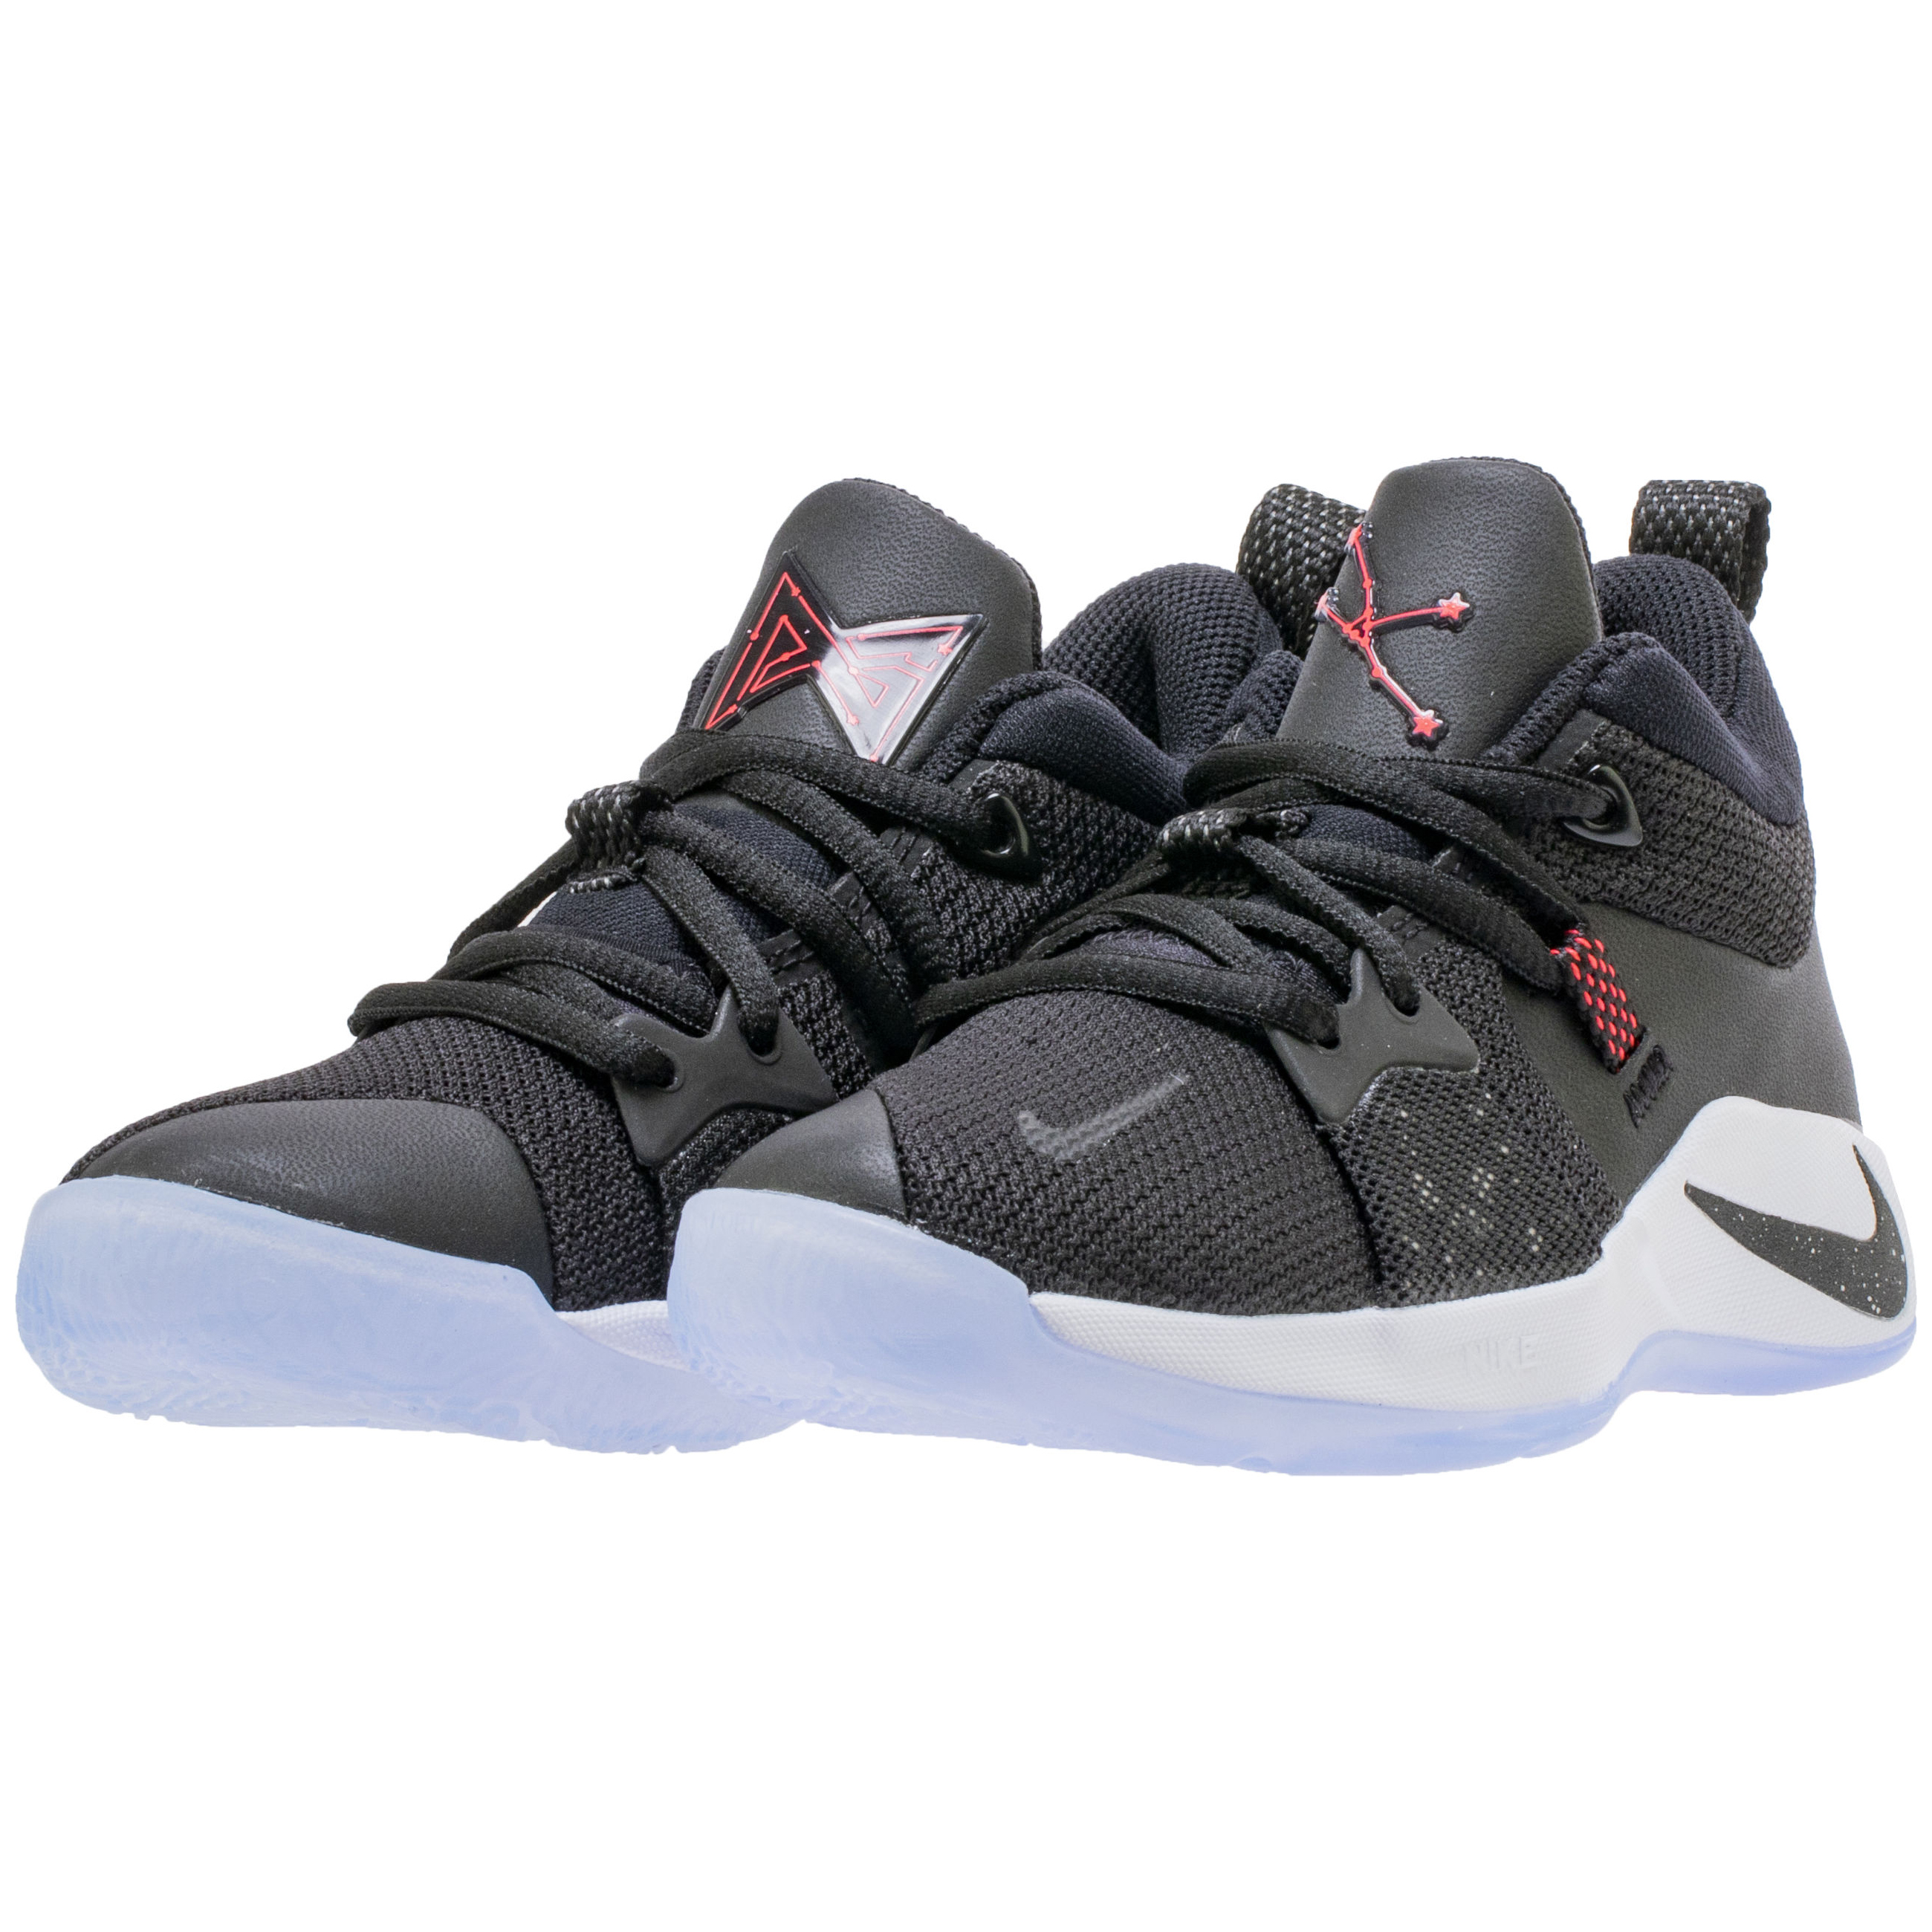 new concept e6460 1dac3 A New Nike PG 2 'Black/White/Red' with Leather is Coming for ...